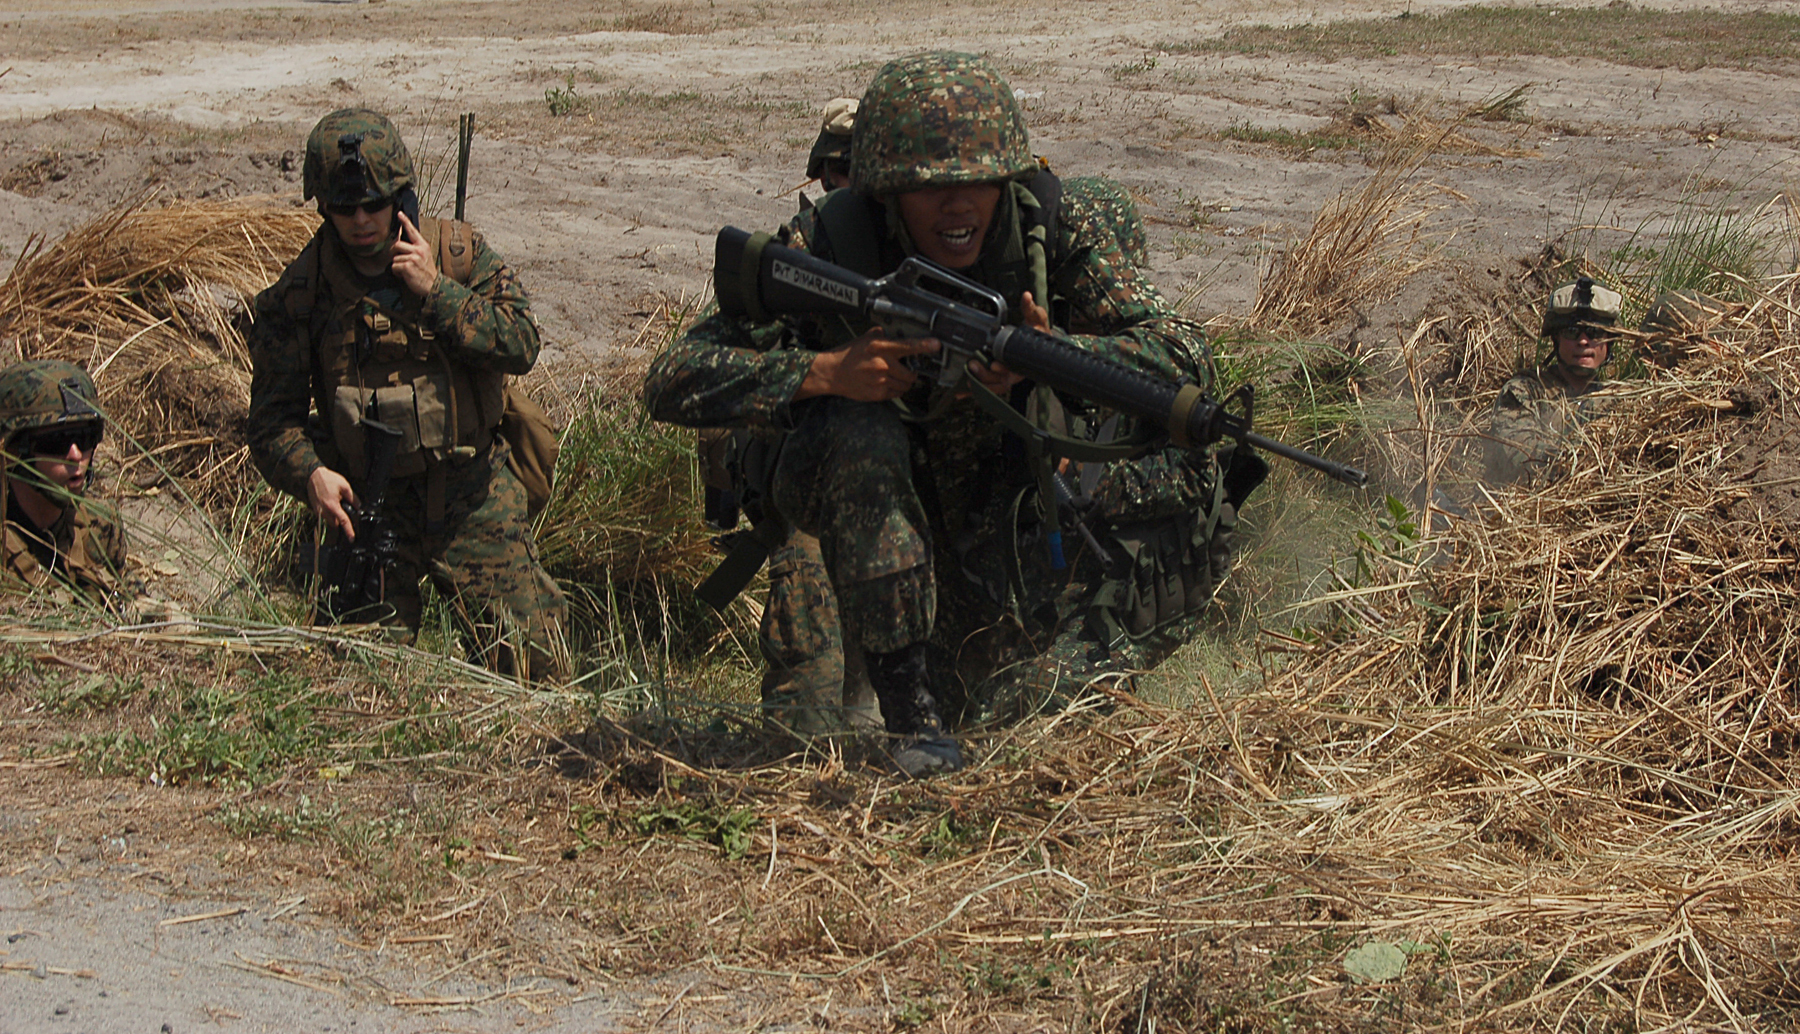 Since 2001, the Philippines and the United States have been on a campaign to battle this insurgency, known as War on Terror. In photo are Filipino and US Troops during the PMC Balikatan Exercise. Photo by Staff Sgt Marc Ayalin / U.S. Marine Corps / Wikimedia Commons.